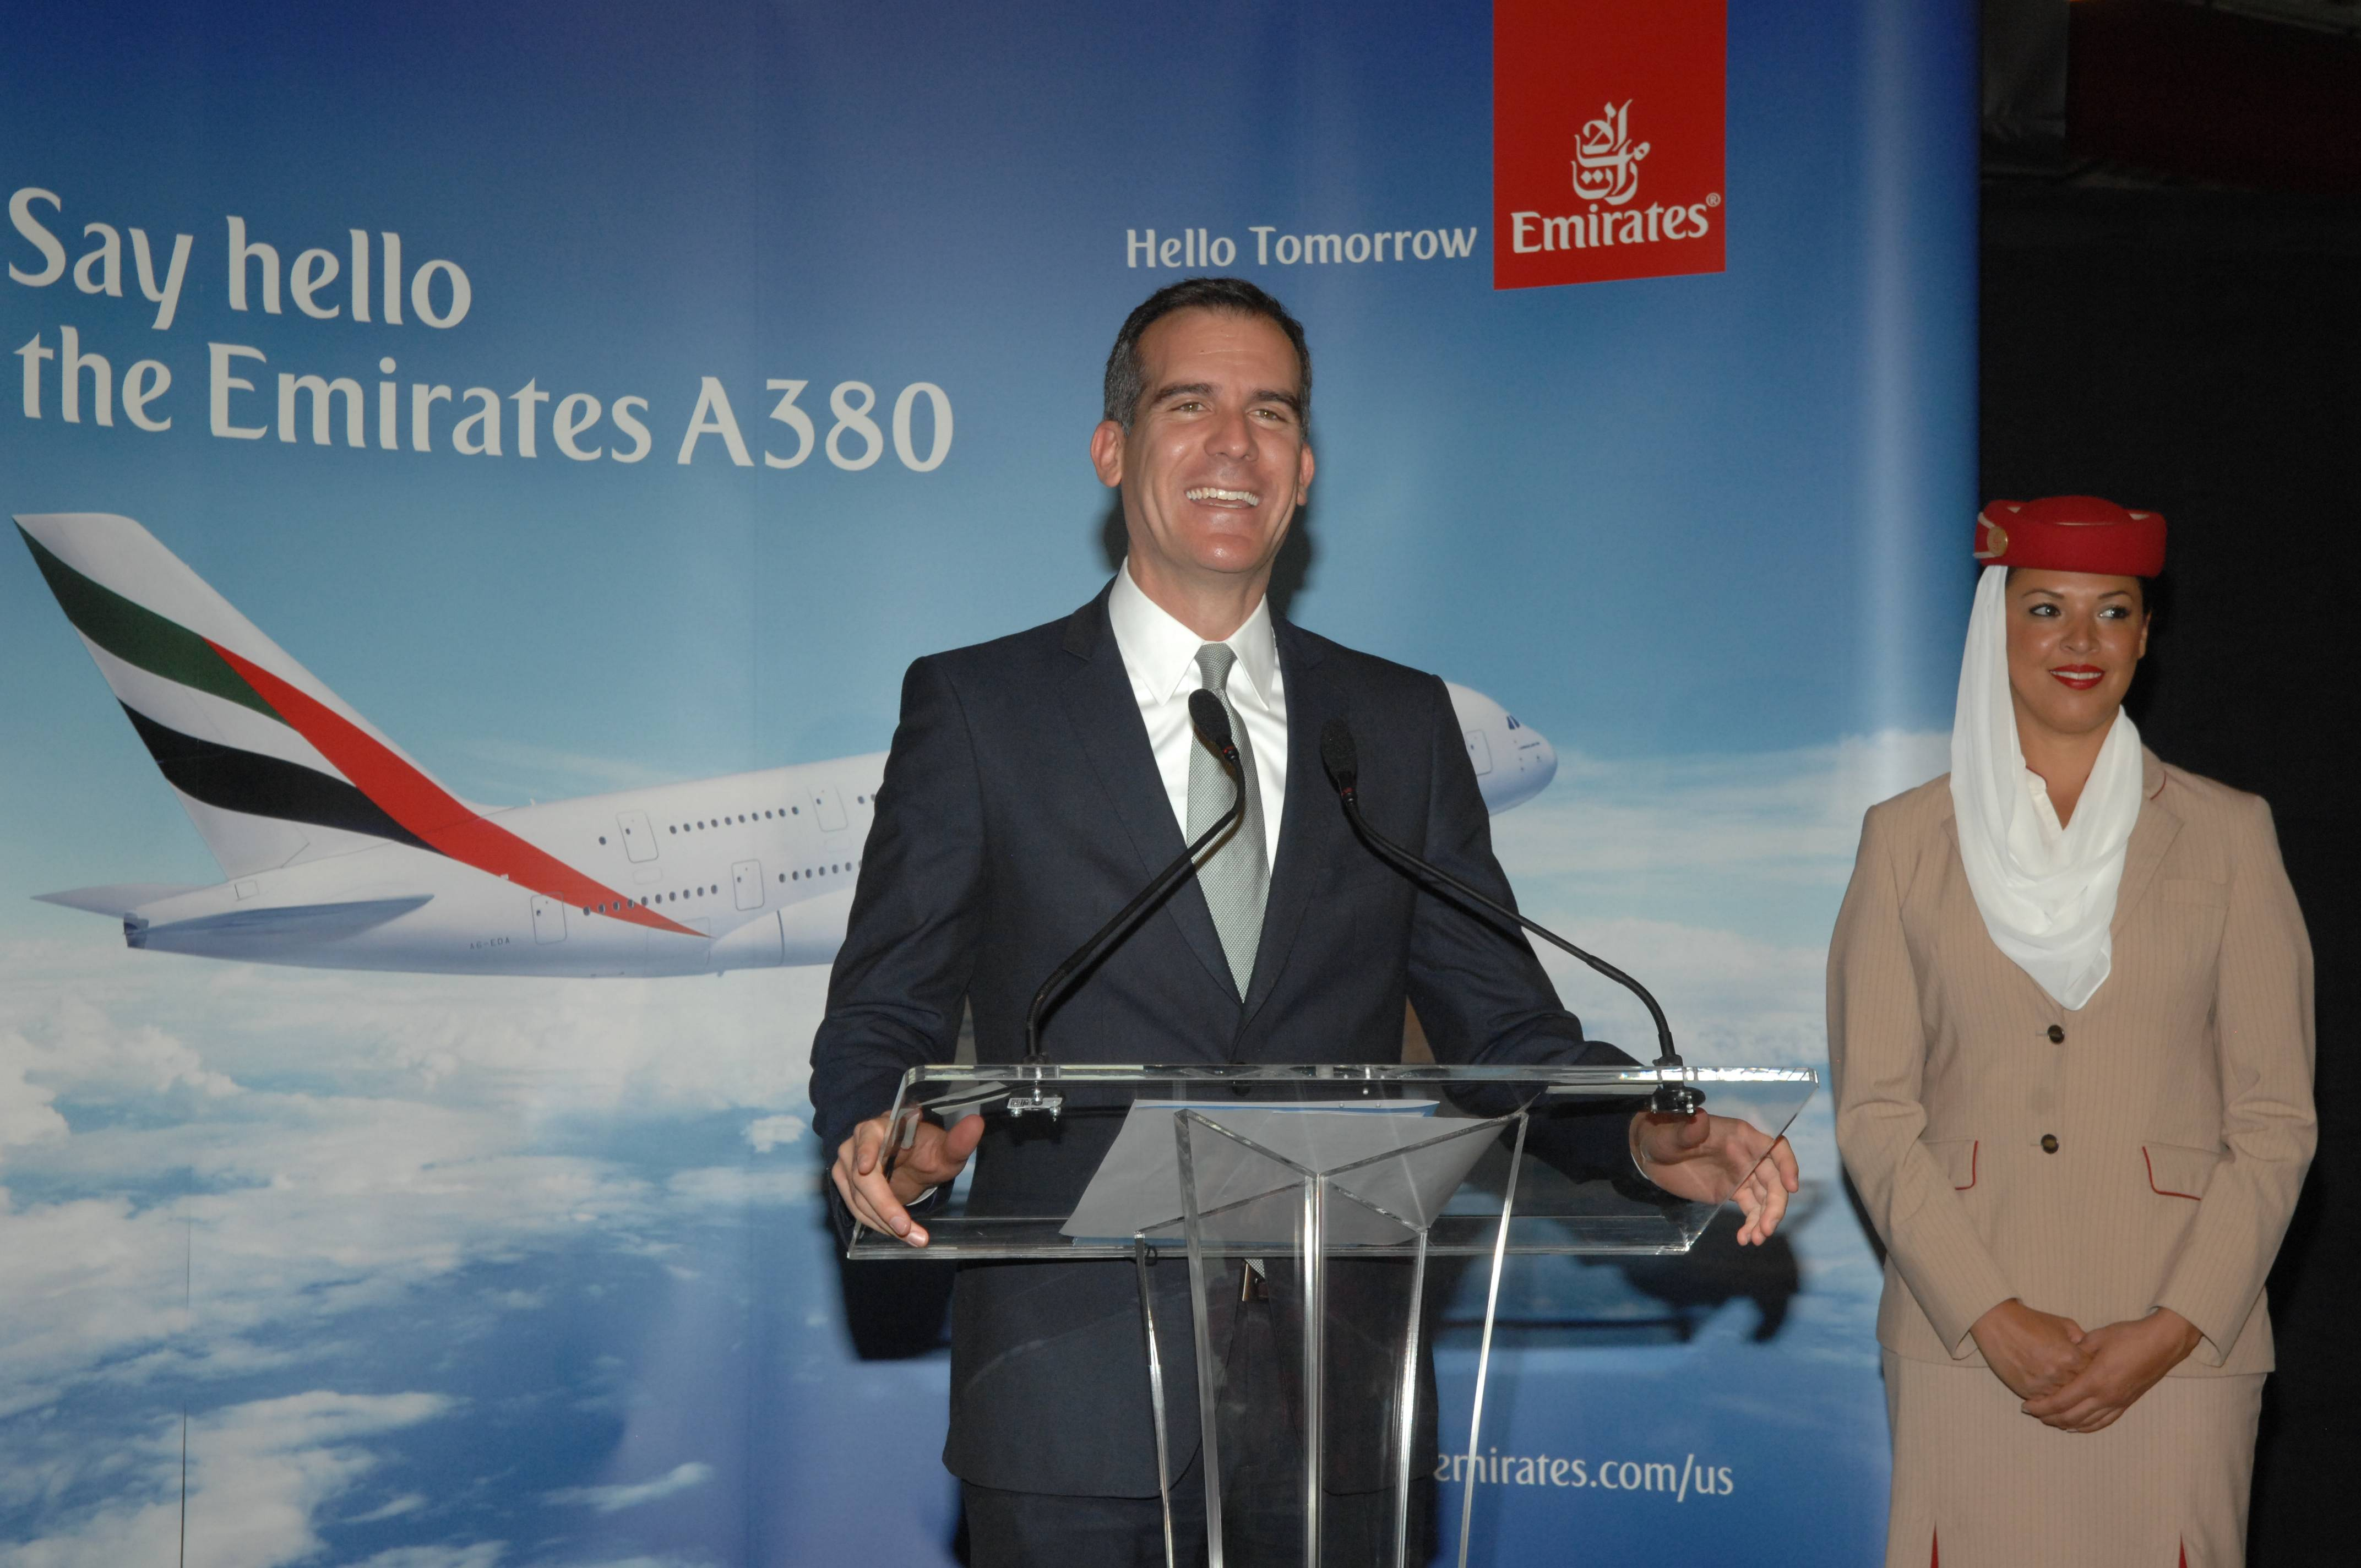 Los Angeles Mayor Eric Garcetti Welcomes the Emirates' A380 Arrival in LA